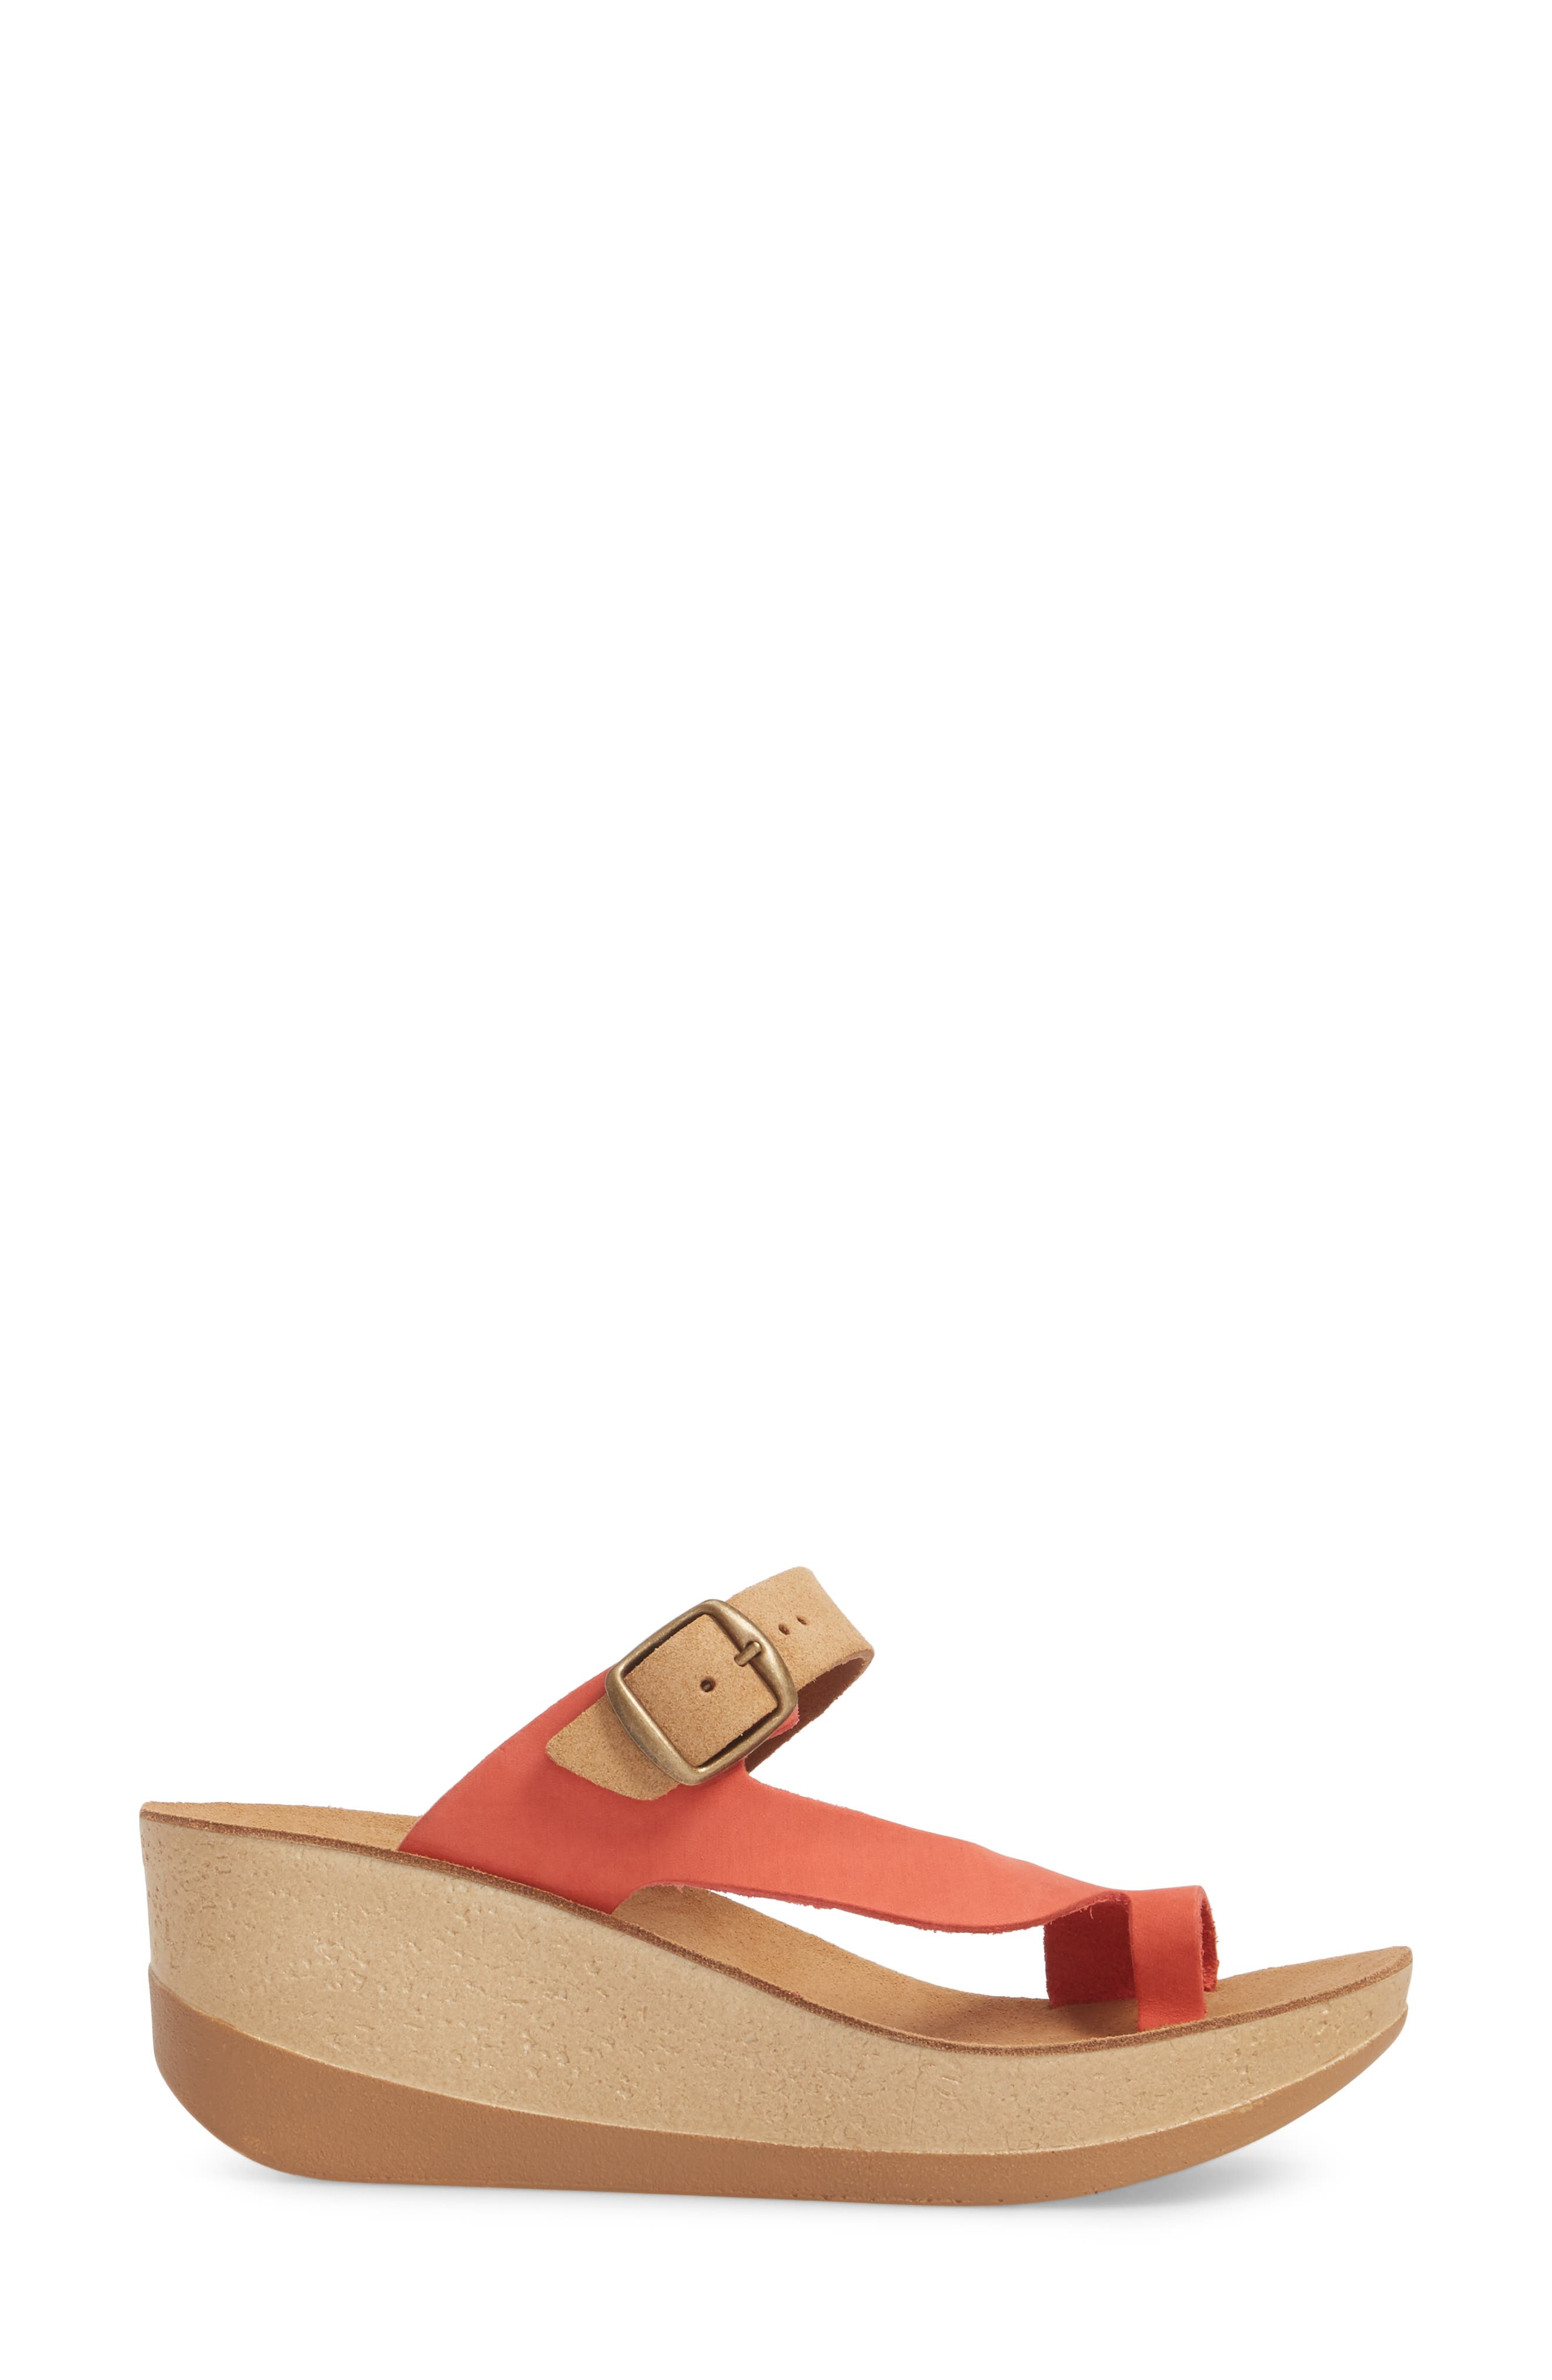 Felisa Wedge Sandal,                             Alternate thumbnail 3, color,                             Cuoio Red Leather